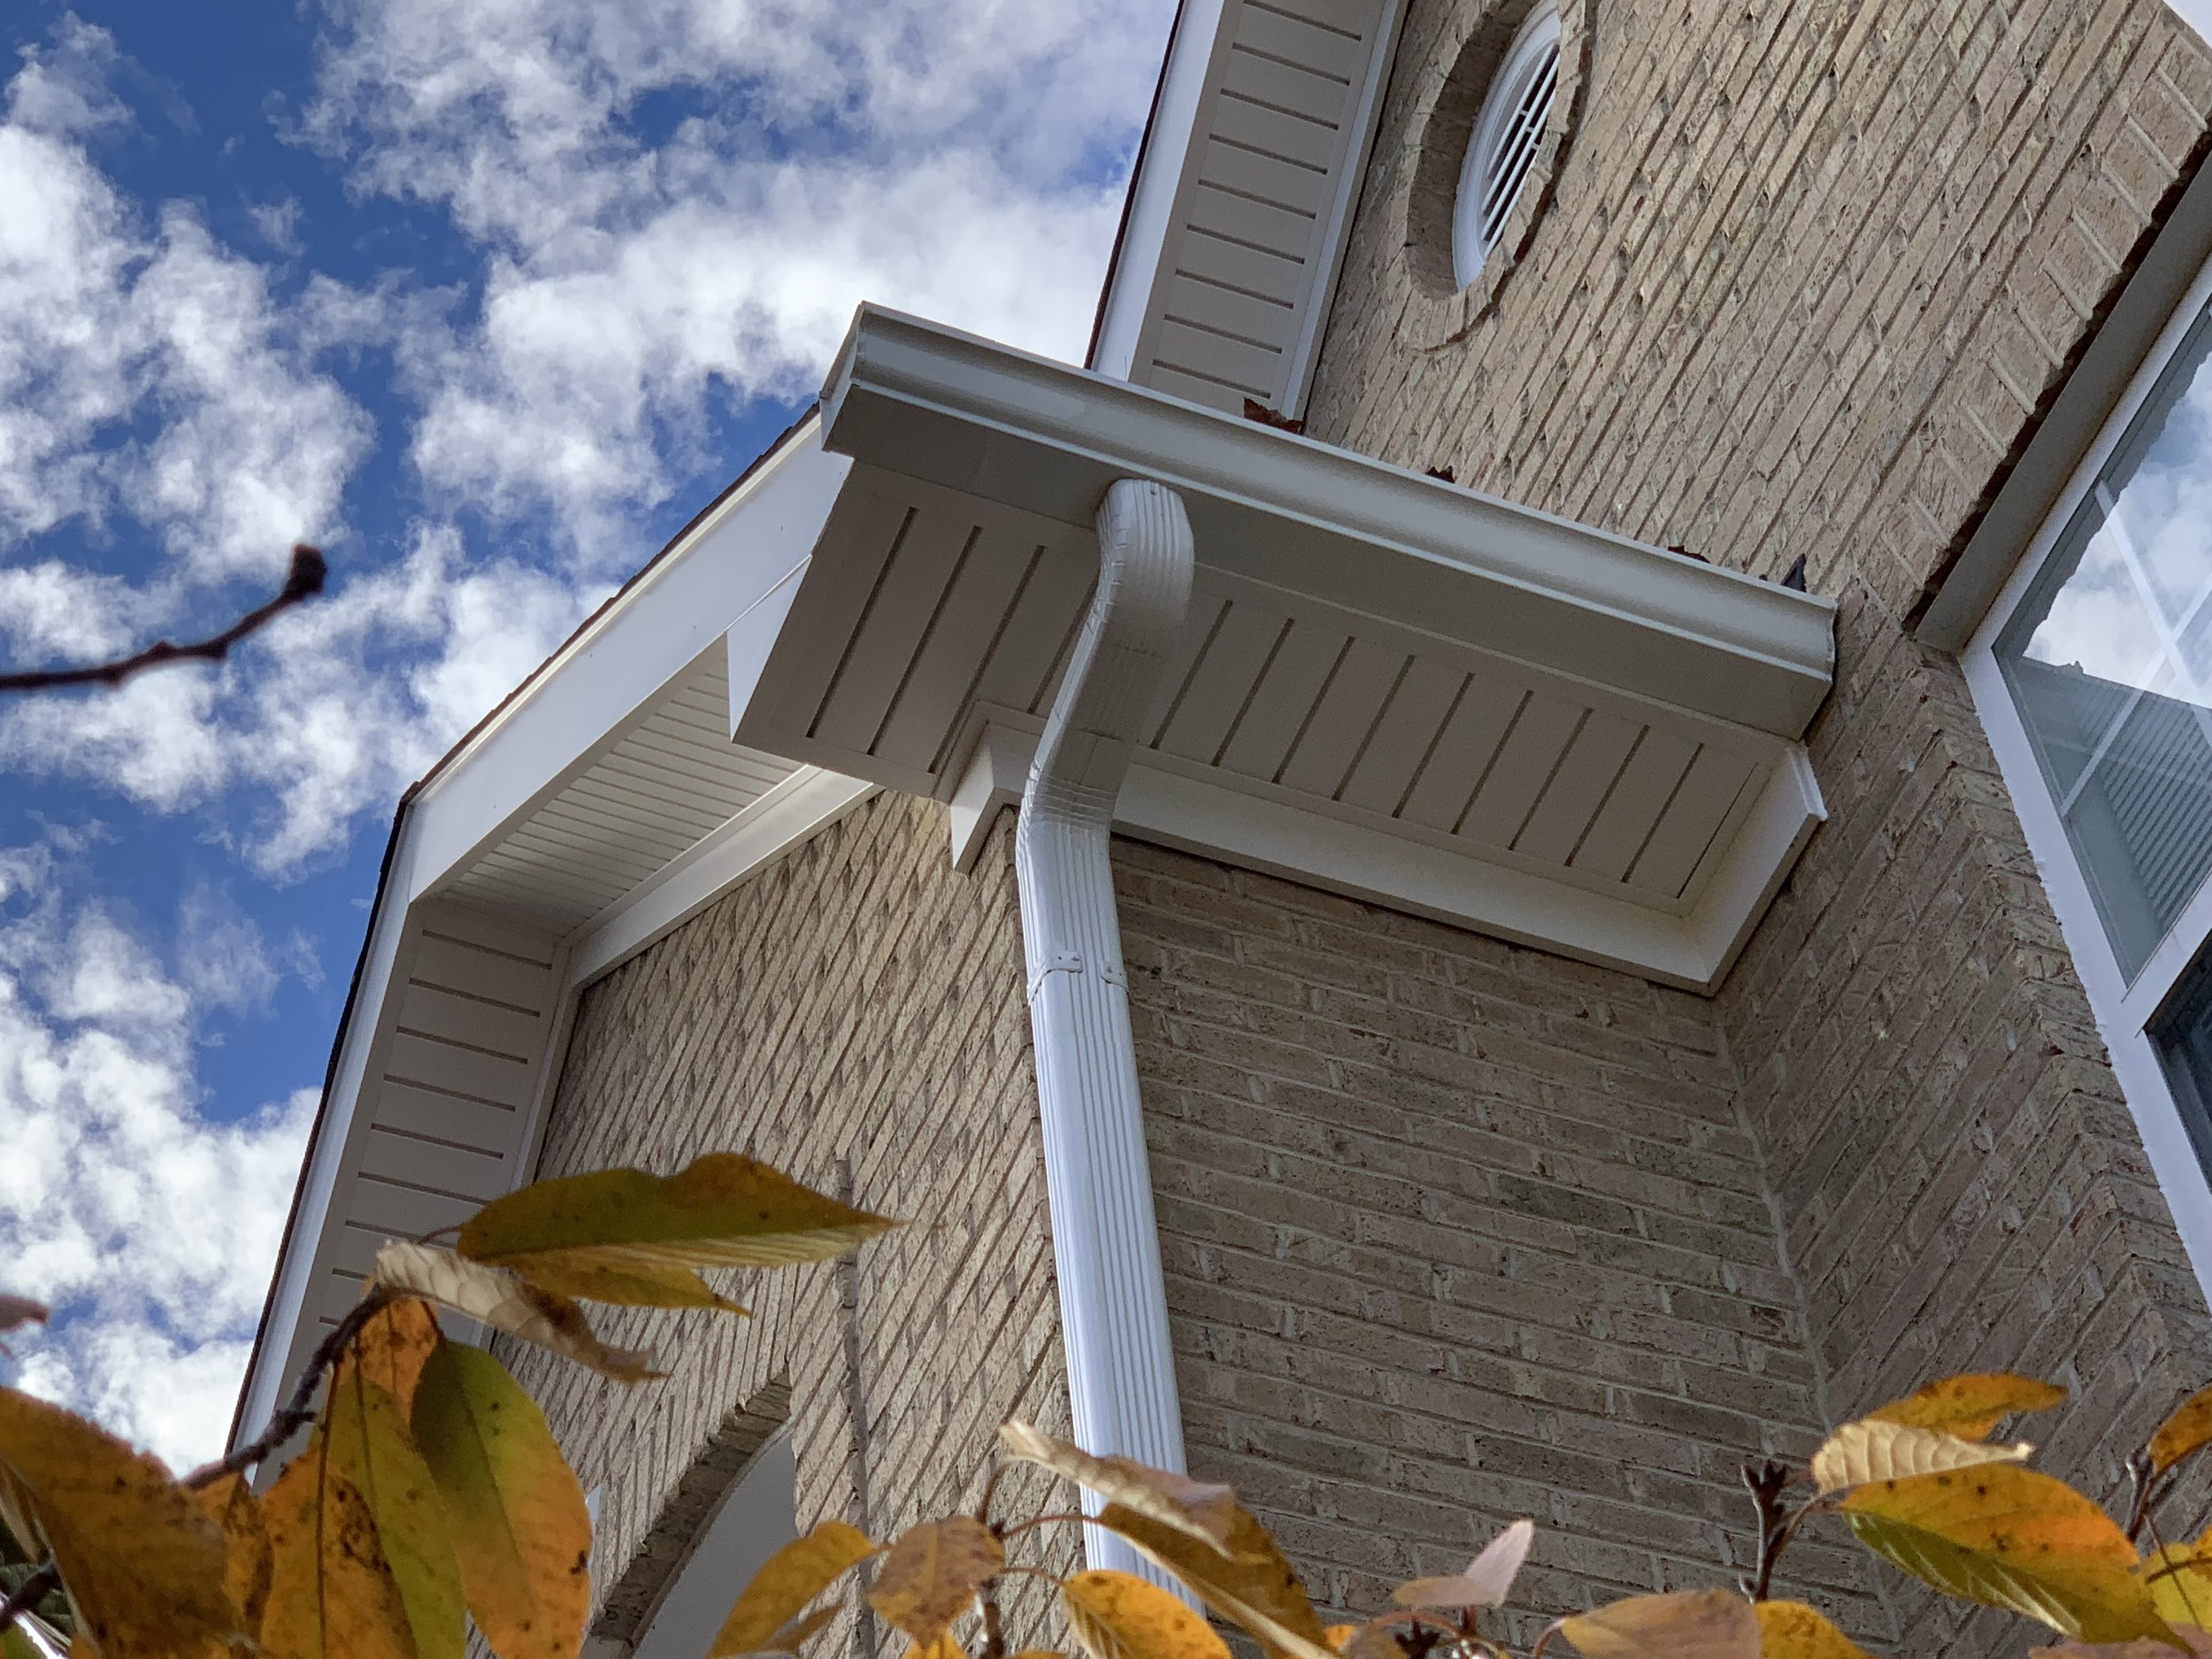 These gutters guarantee safety from damaging rainfall!